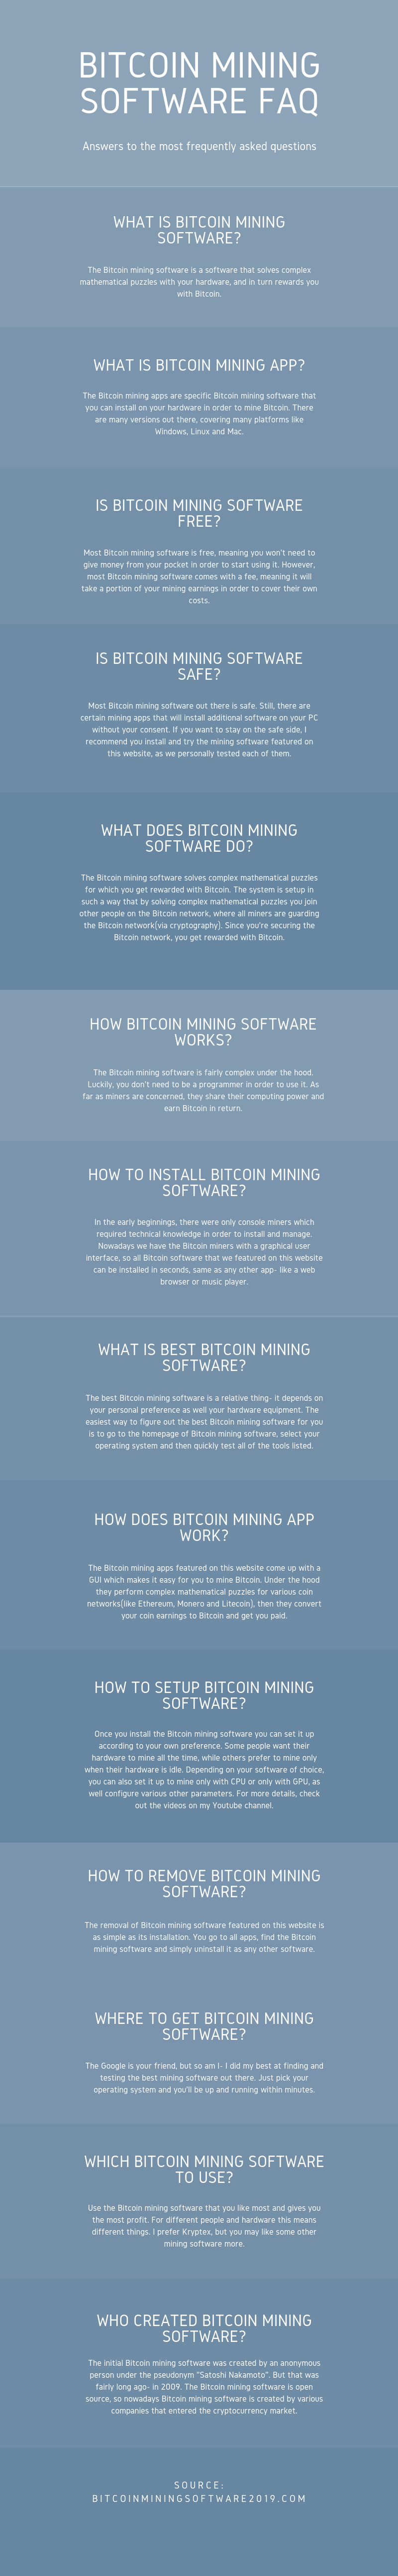 Bitcoin Mining Software FAQ